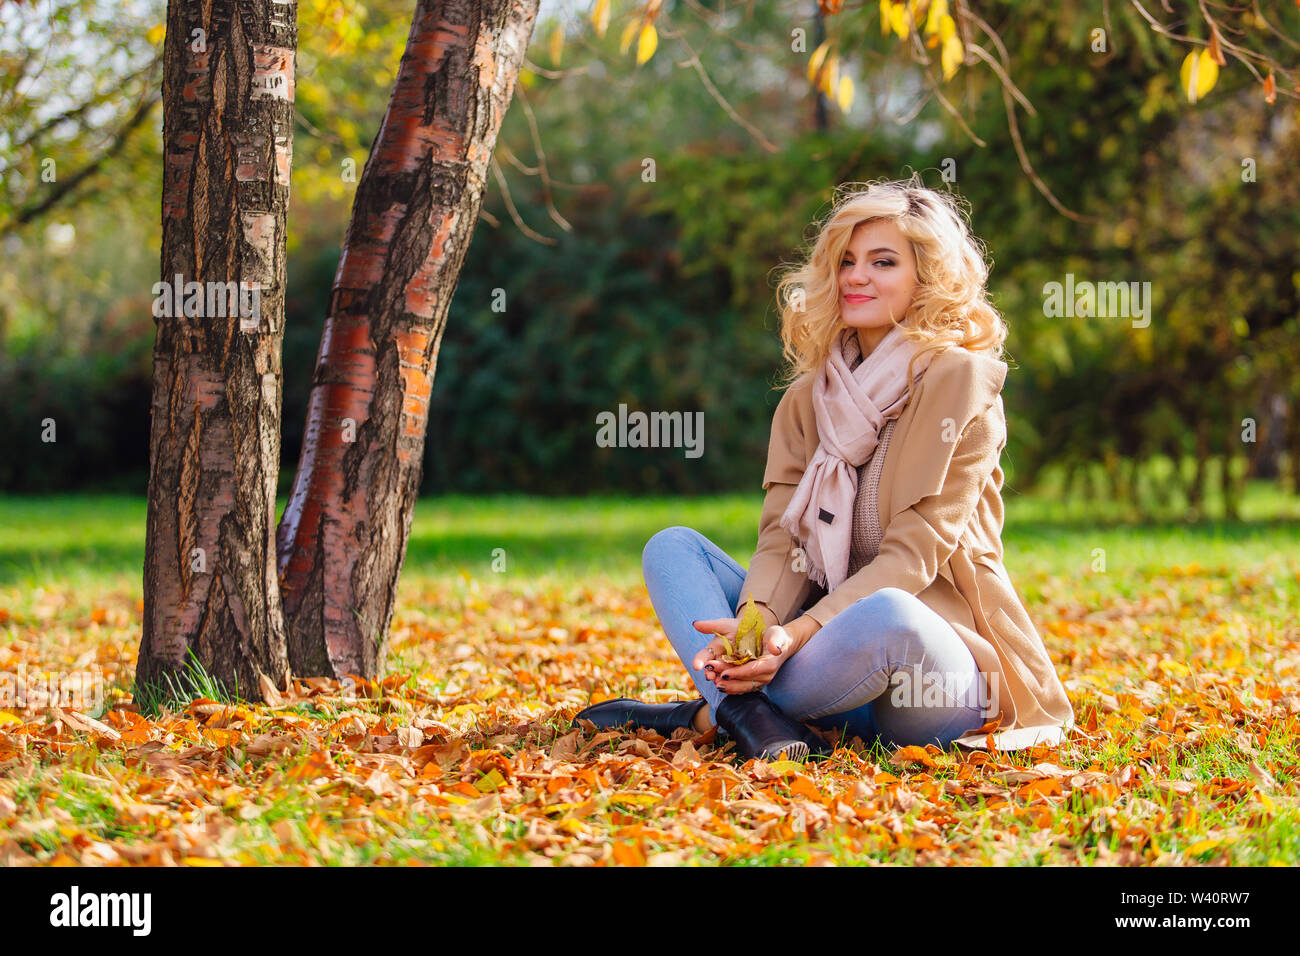 Young beautiful woman sitting under the tree on the ground coverd with fallen yellow autumn leaves - Stock Image